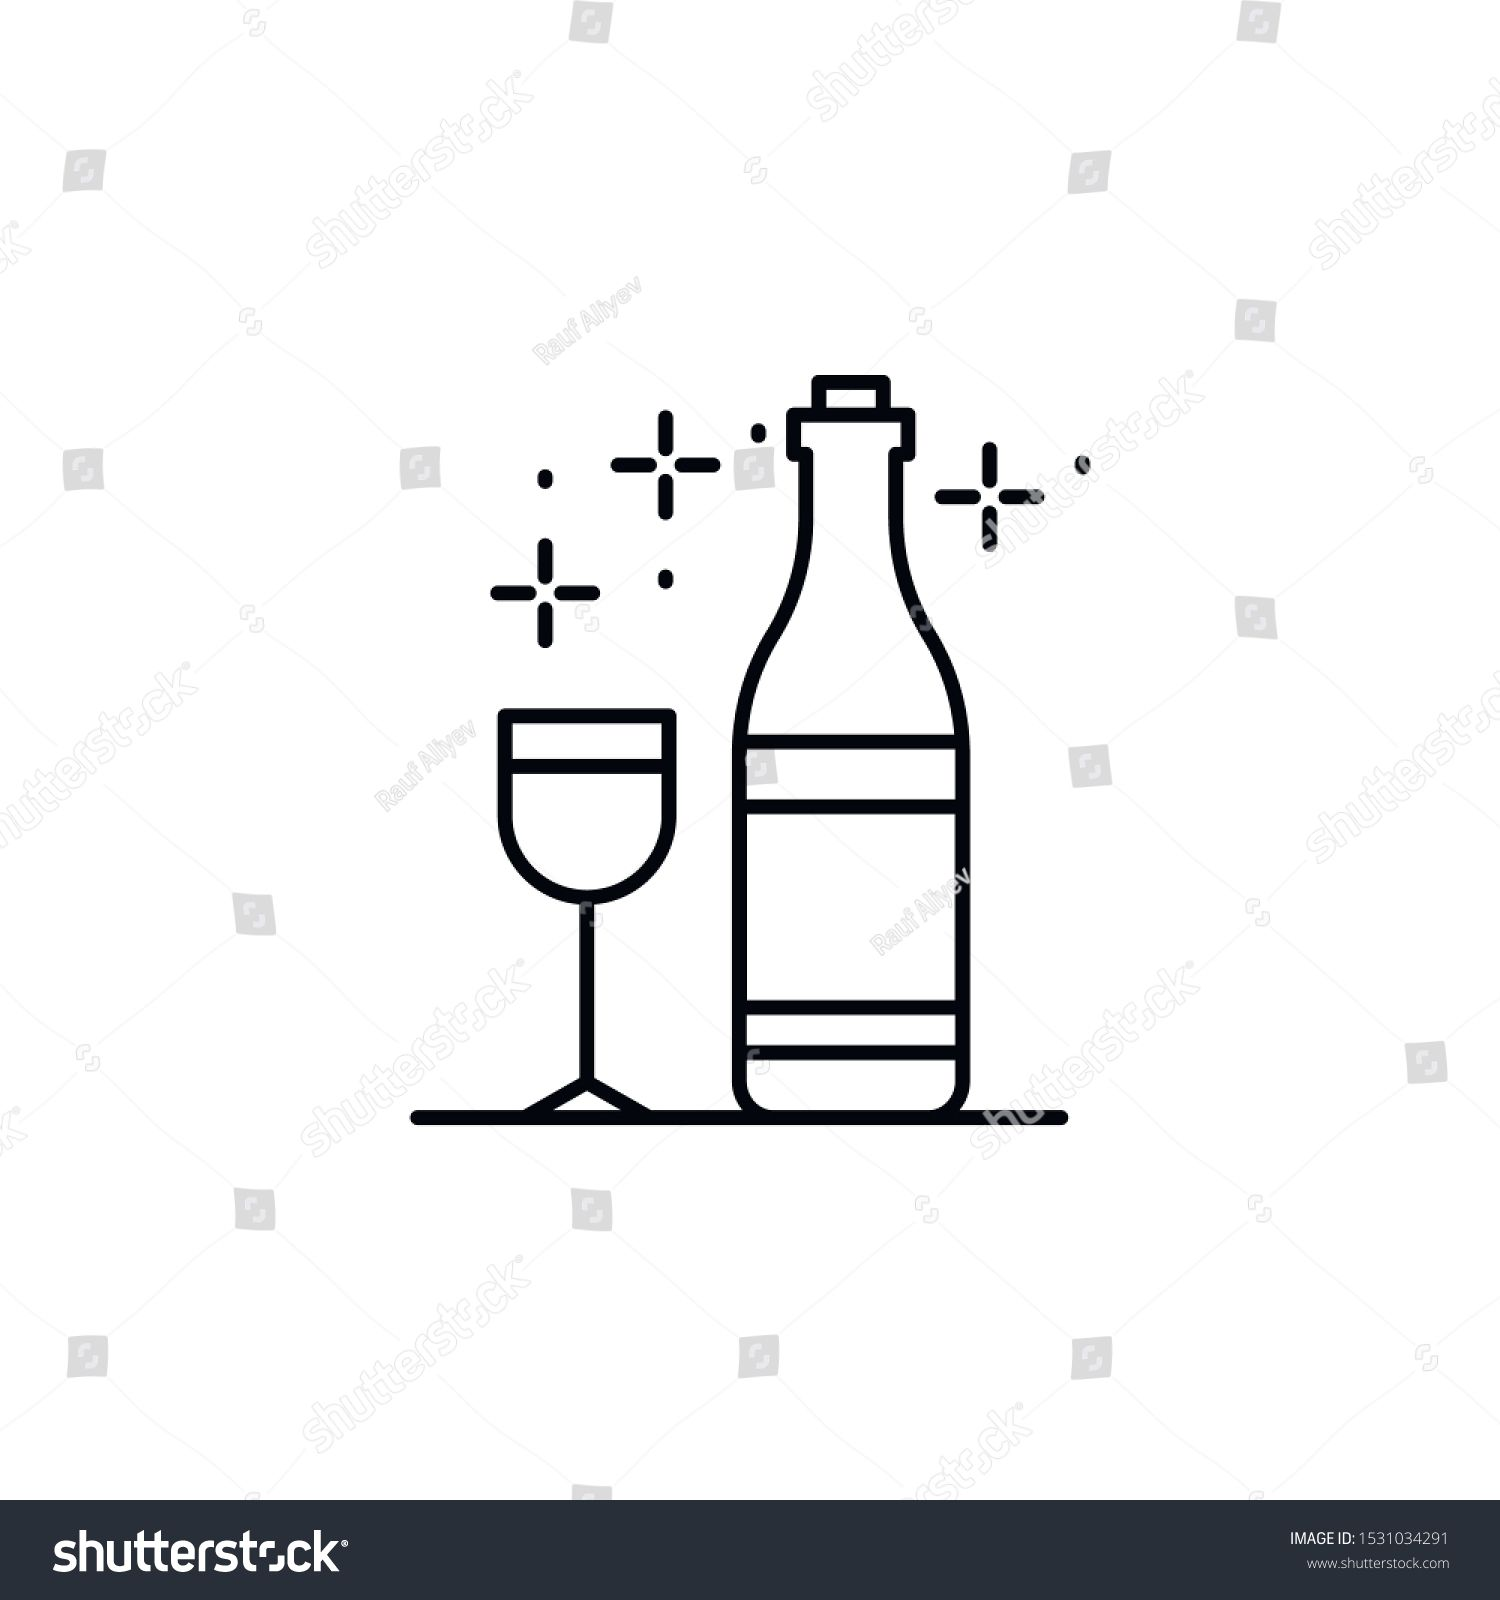 Glass if wine icon Element of Food and Drink icon Thin line icon